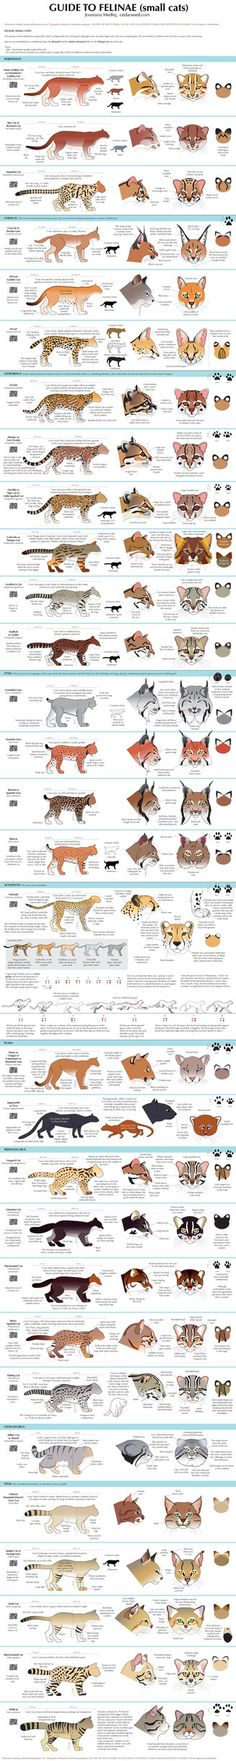 2014 update: This is quiiiiite old and while I wouldn't recommend trying to learn too much from it, it's kinda cool to look at and does point out some subtle differences between the species. Please...